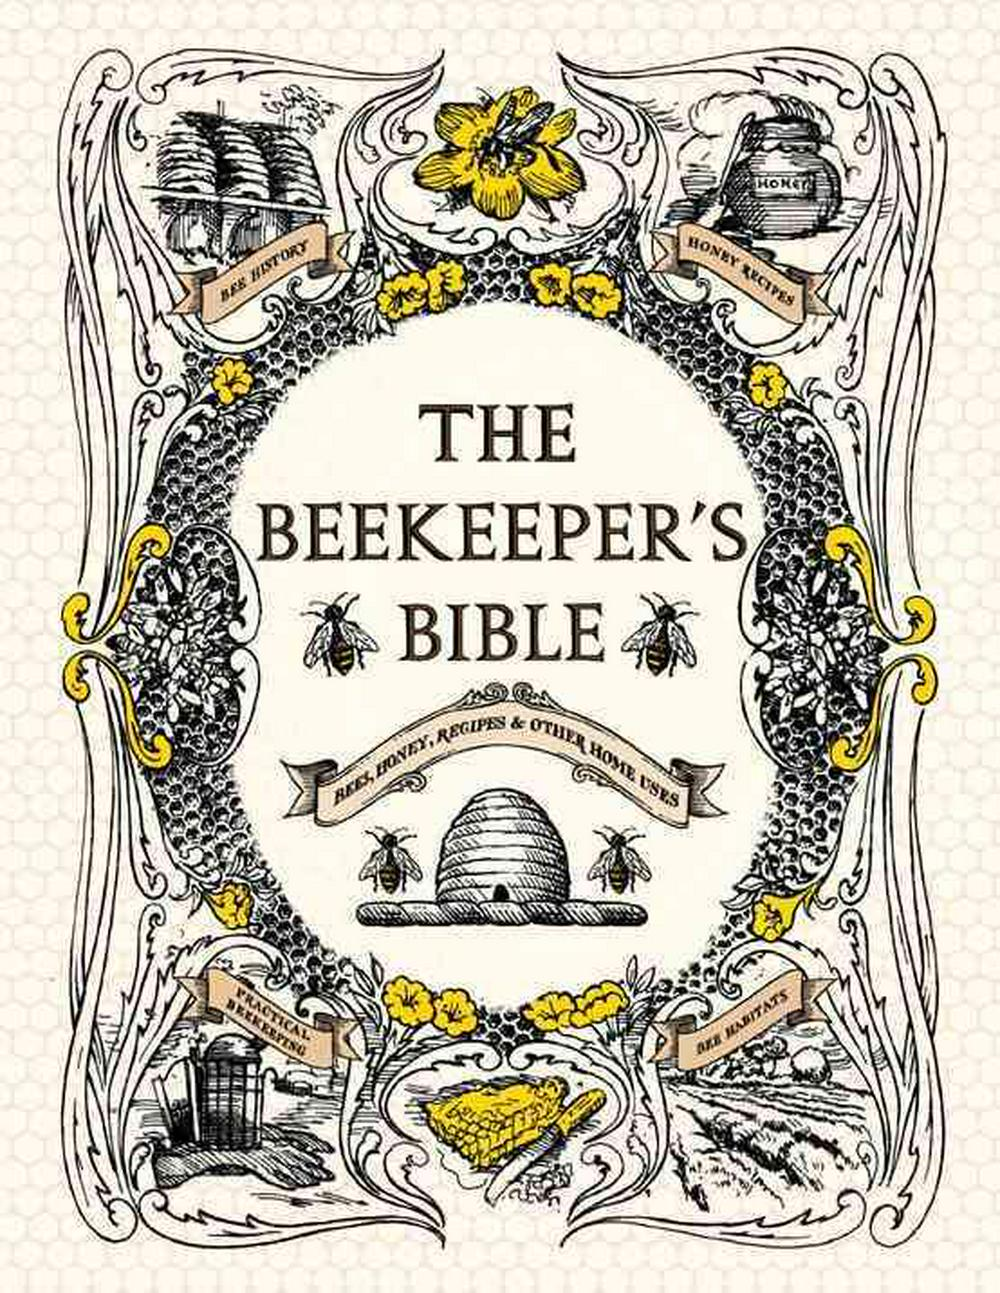 The Beekeeper's Bible: Bees, Honey, Recipes & Other Home Uses by Richard A Jones, ISBN: 9781584799184